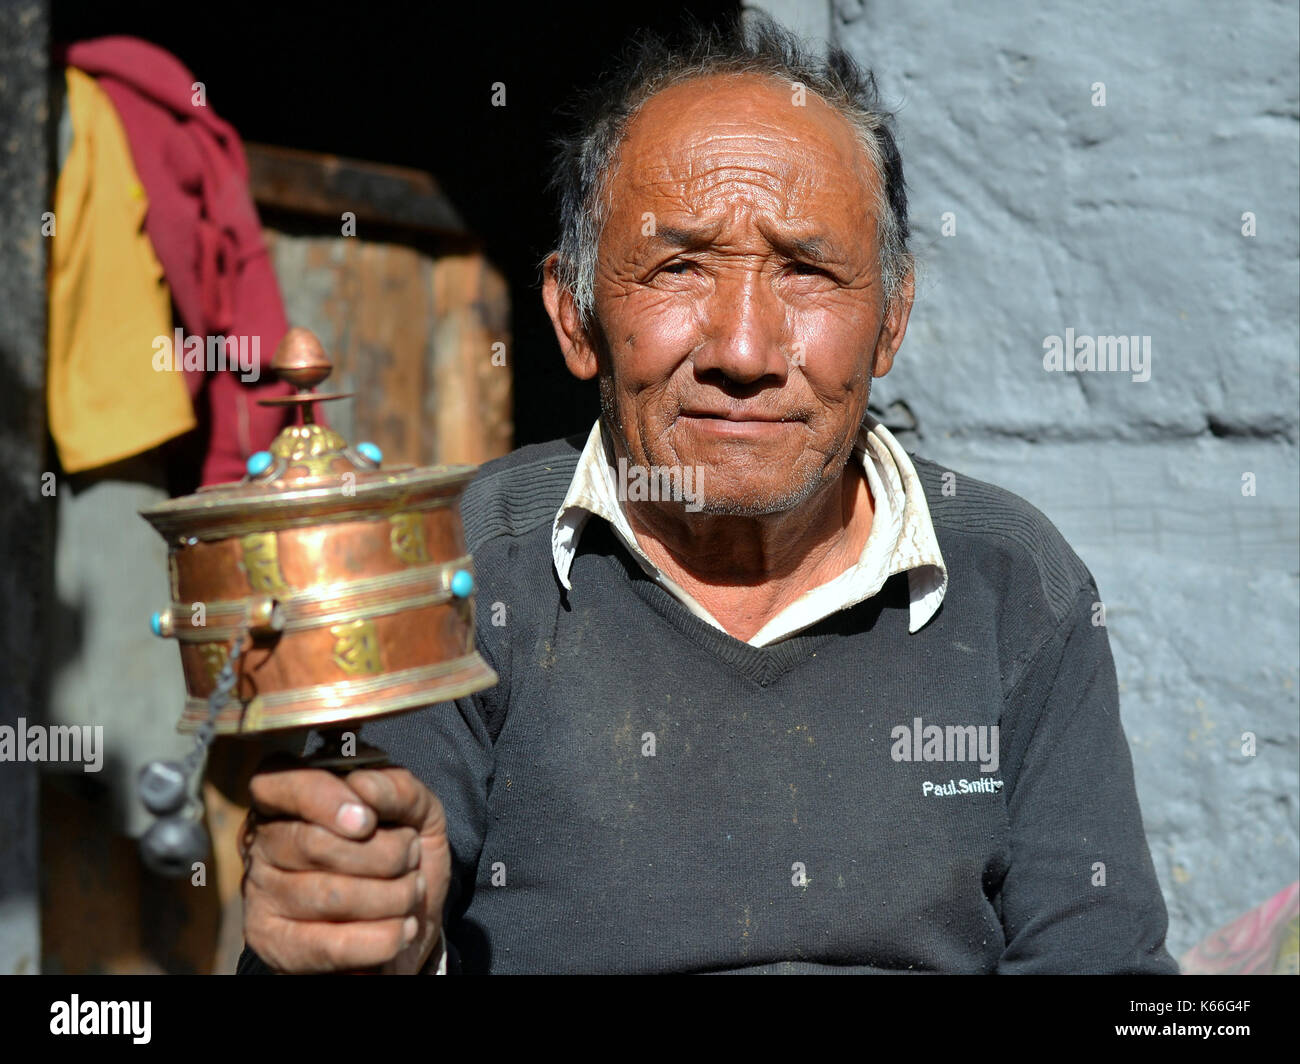 Old Gurung man from Nepal, swinging a Tibetan hand prayer wheel (mani wheel) with his right hand - Stock Image